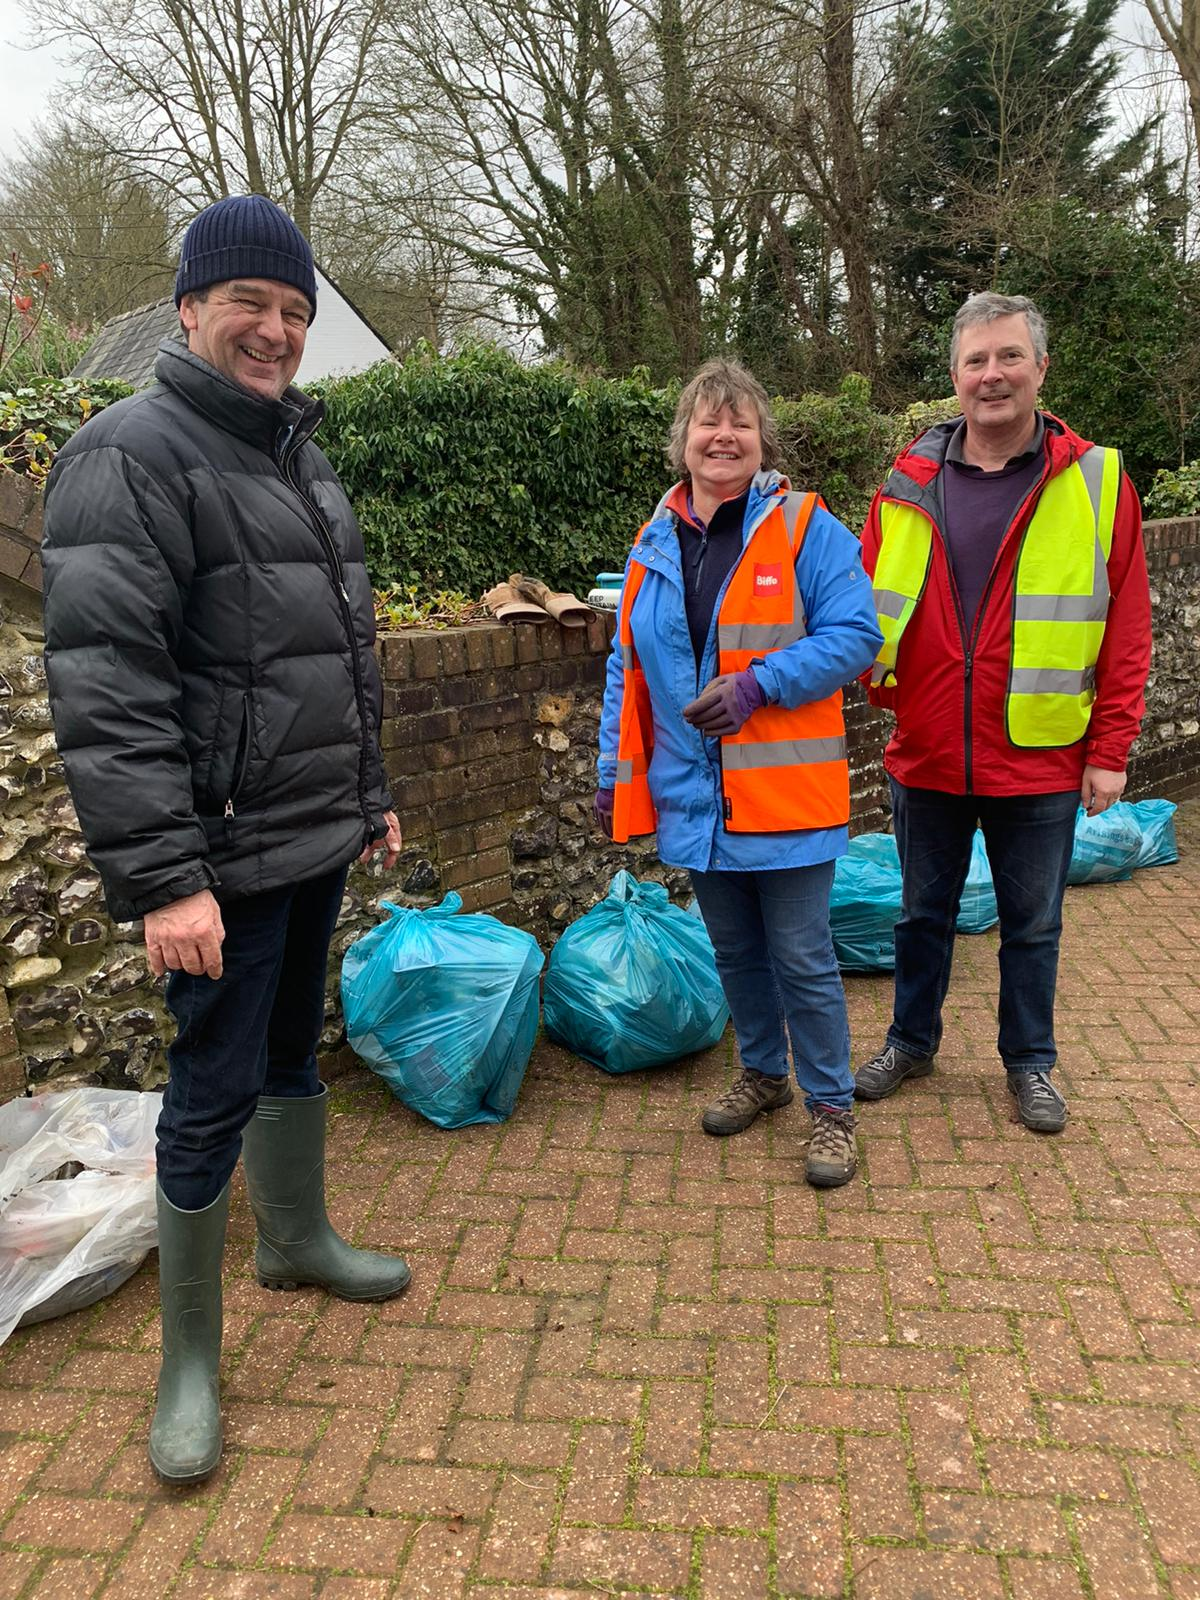 Litter pick up 2 - March 15th